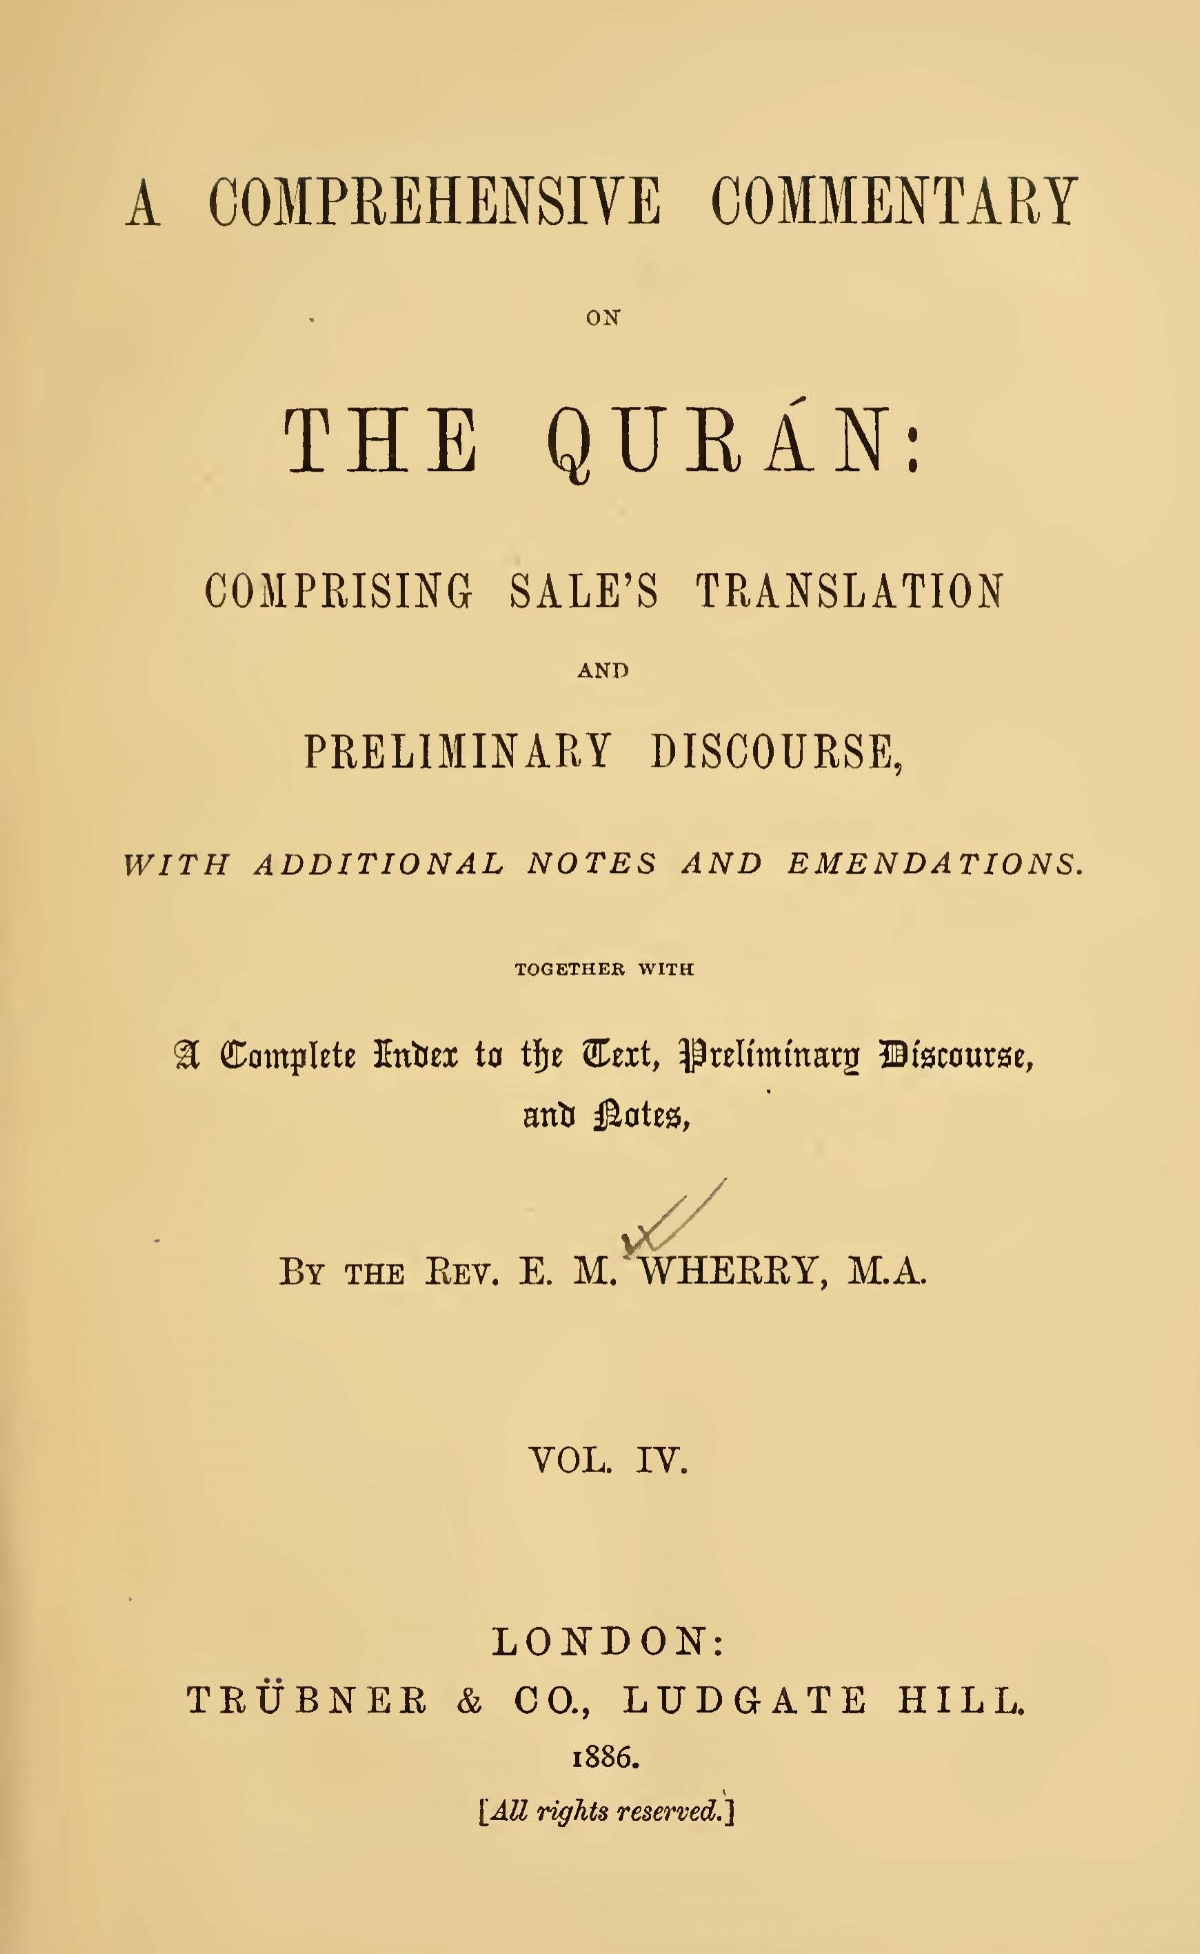 Wherry, Elwood Morris, A Comprehensive Commentary on the Quran, Vol. 4 Title Page.jpg